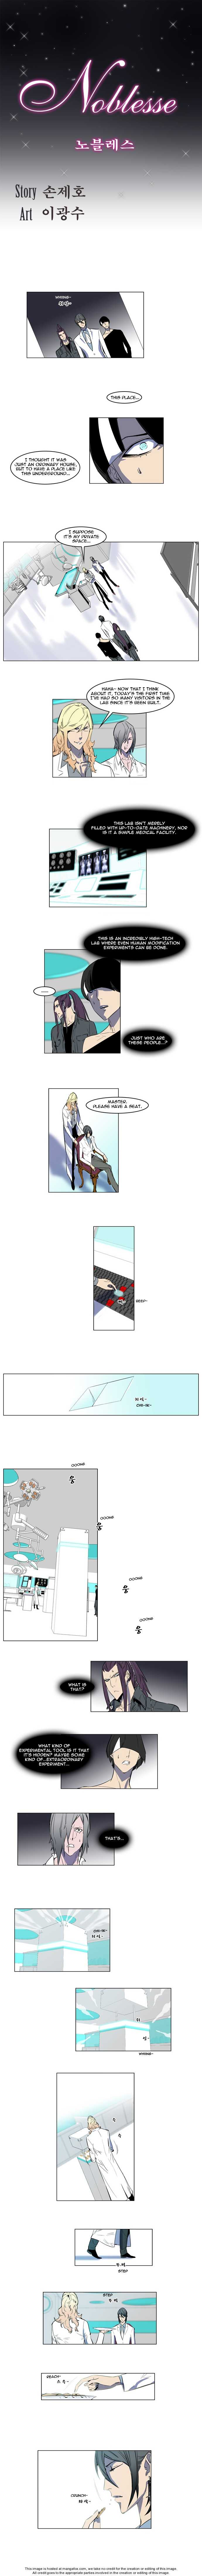 Noblesse 142 Page 1